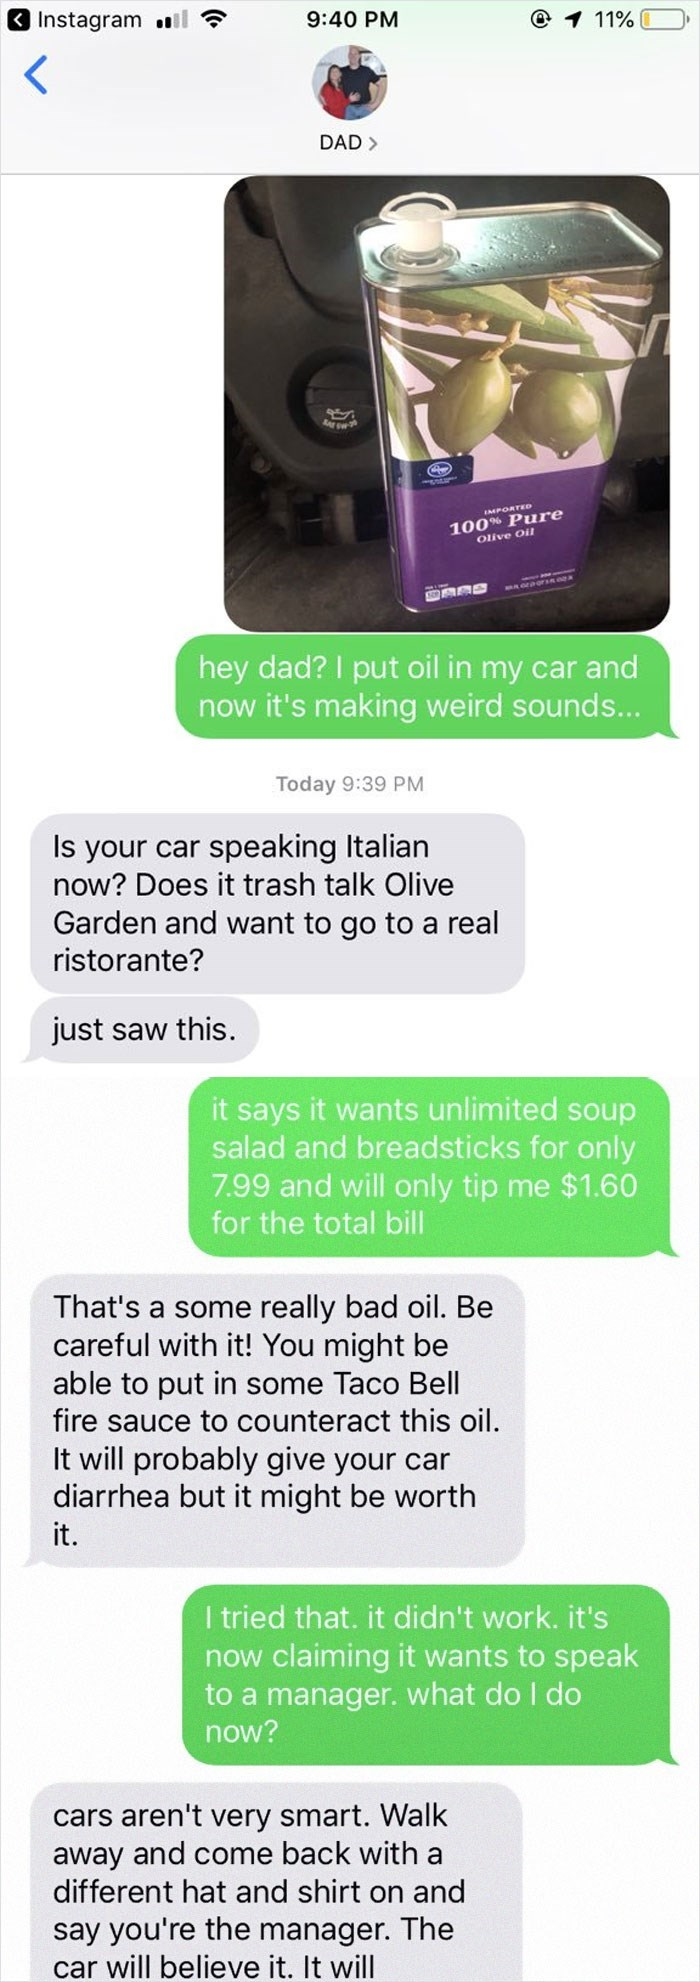 Text - @ 1 11 % Instagram l 9:40 PM DAD 100% Pure Olive Oil hey dad? I put oil in my car and now it's making weird sounds... Today 9:39 PM Is your car speaking Italian now? Does it trash talk Olive Garden and want to go to a real ristorante? just saw this it says it wants unlimited soup salad and breadsticks for only 7.99 and will only tip me $1.60 for the total bill That's a some really bad oil. Be careful with it! You might be able to put in some Taco Bell fire sauce to counteract this oil It